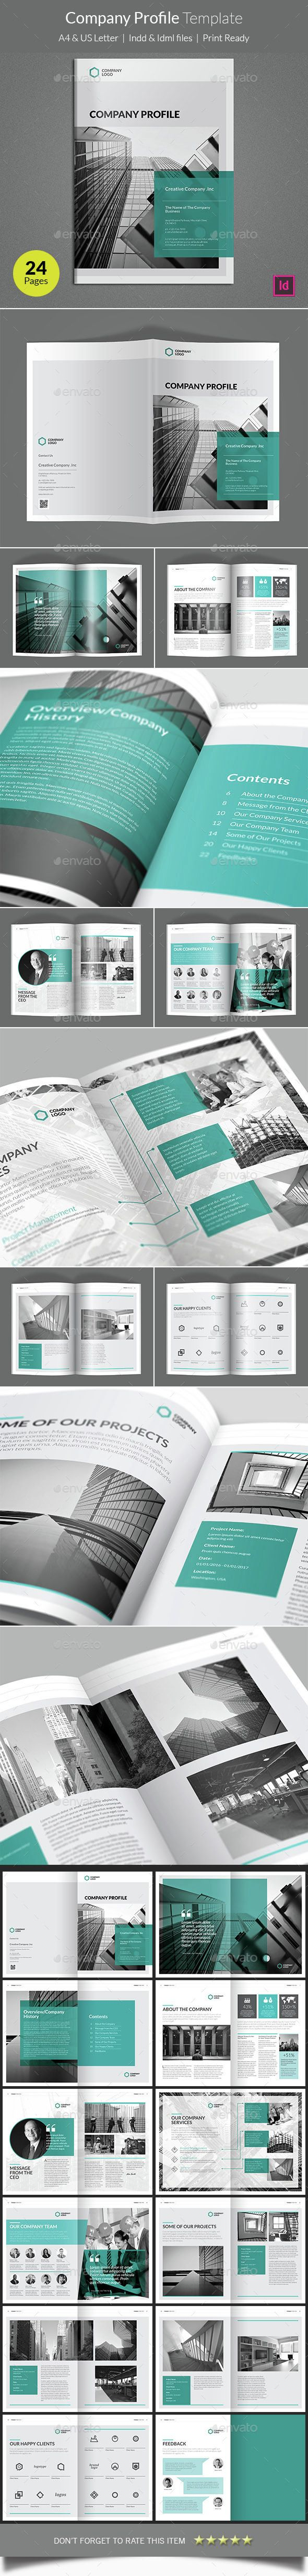 11 Best PRIN Images On Pinterest Editorial Design Flyer Design  D64648f08098c6fdcab324f035991af3 Prin Free Samples Of Company Profiles  Free Samples Of Company Profiles